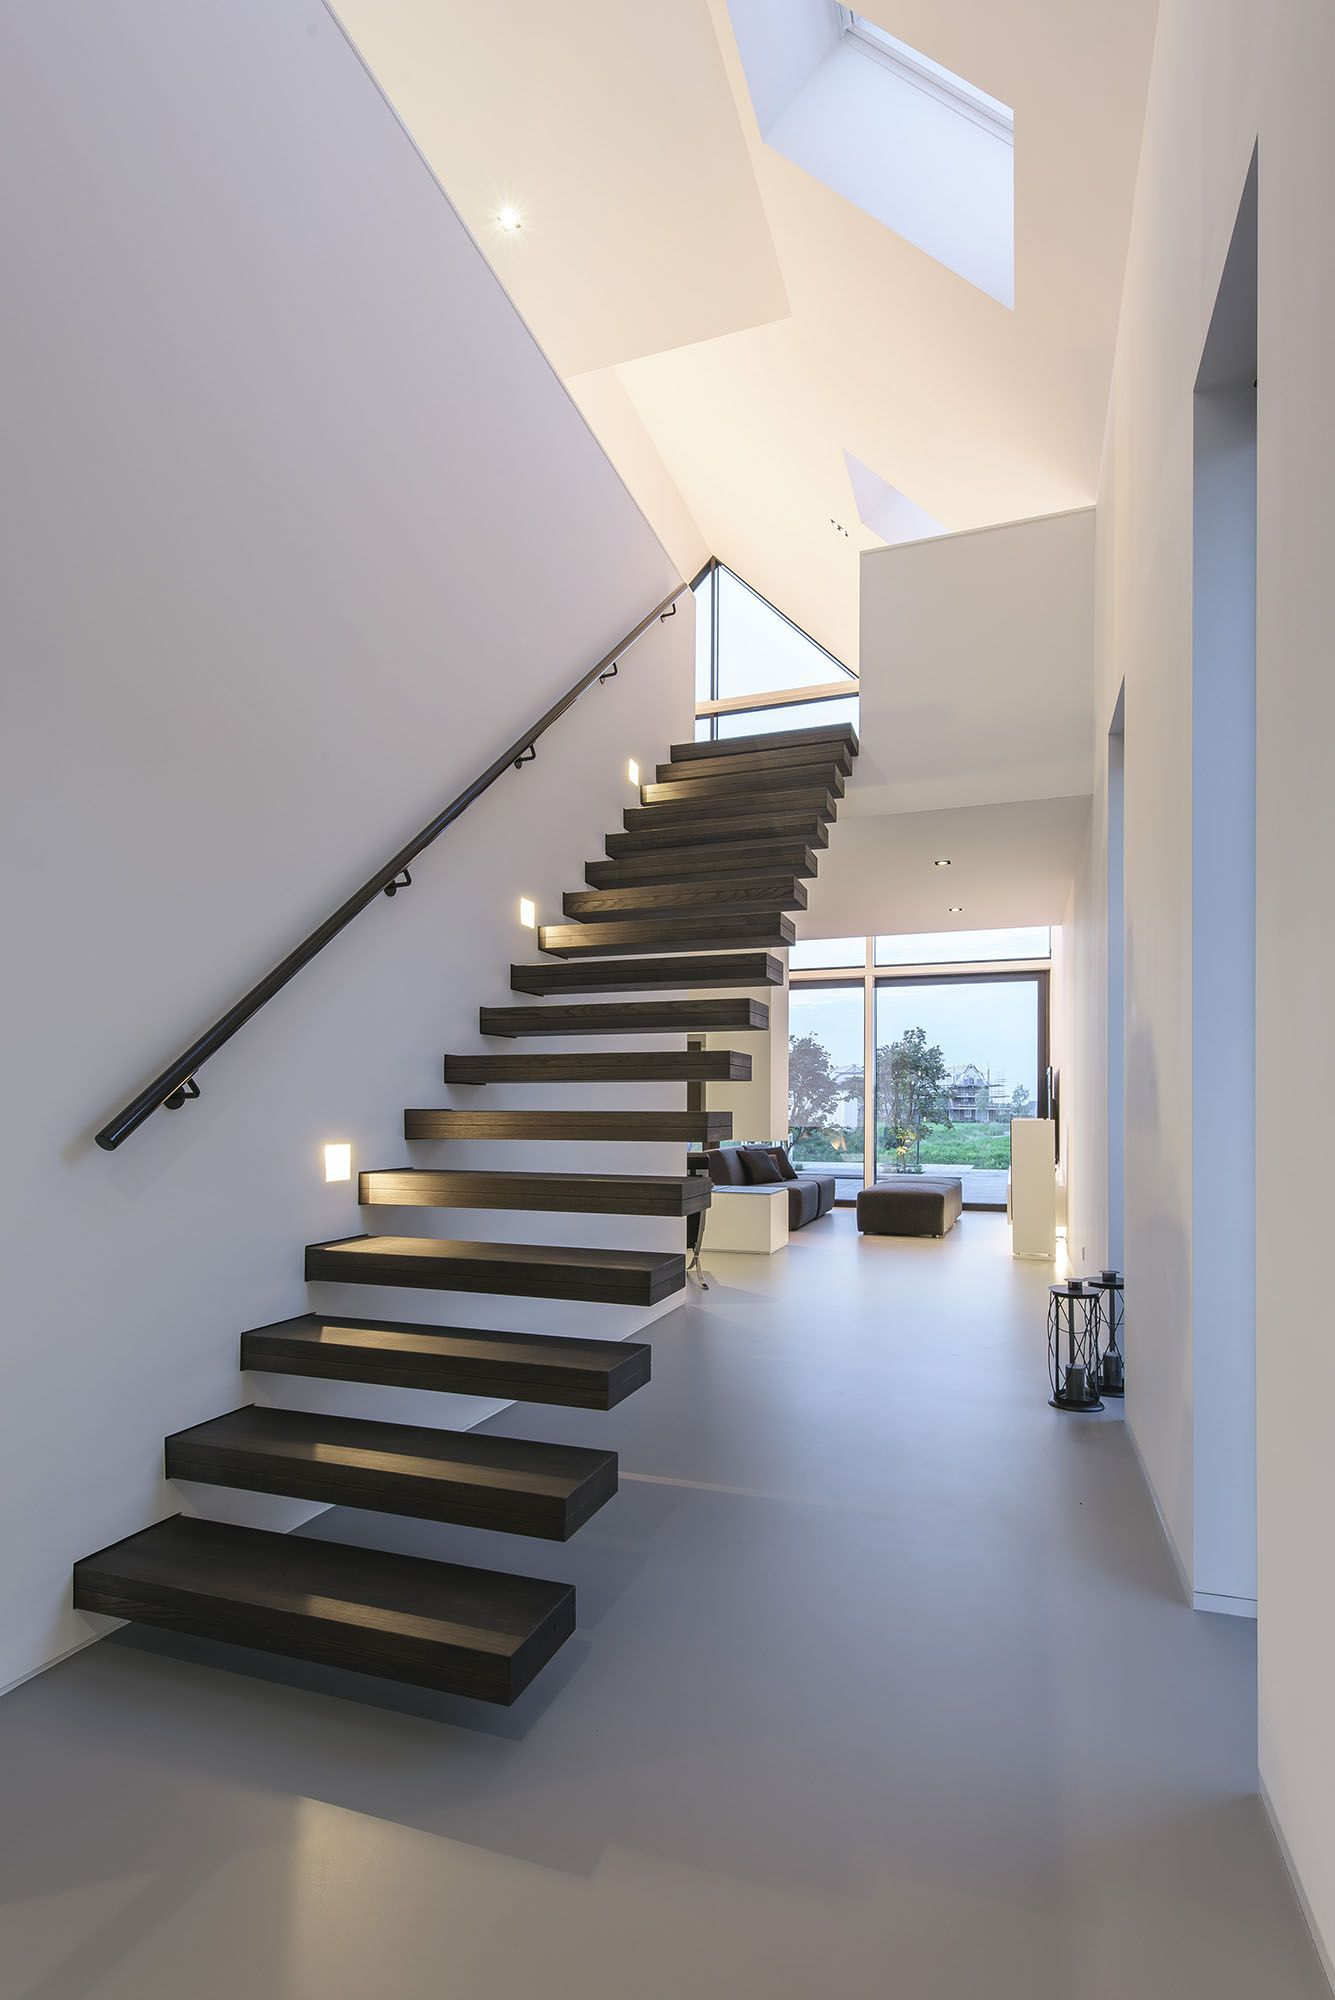 Zwevende trap in vide | Designs | Pinterest | Nice houses, Interior ...